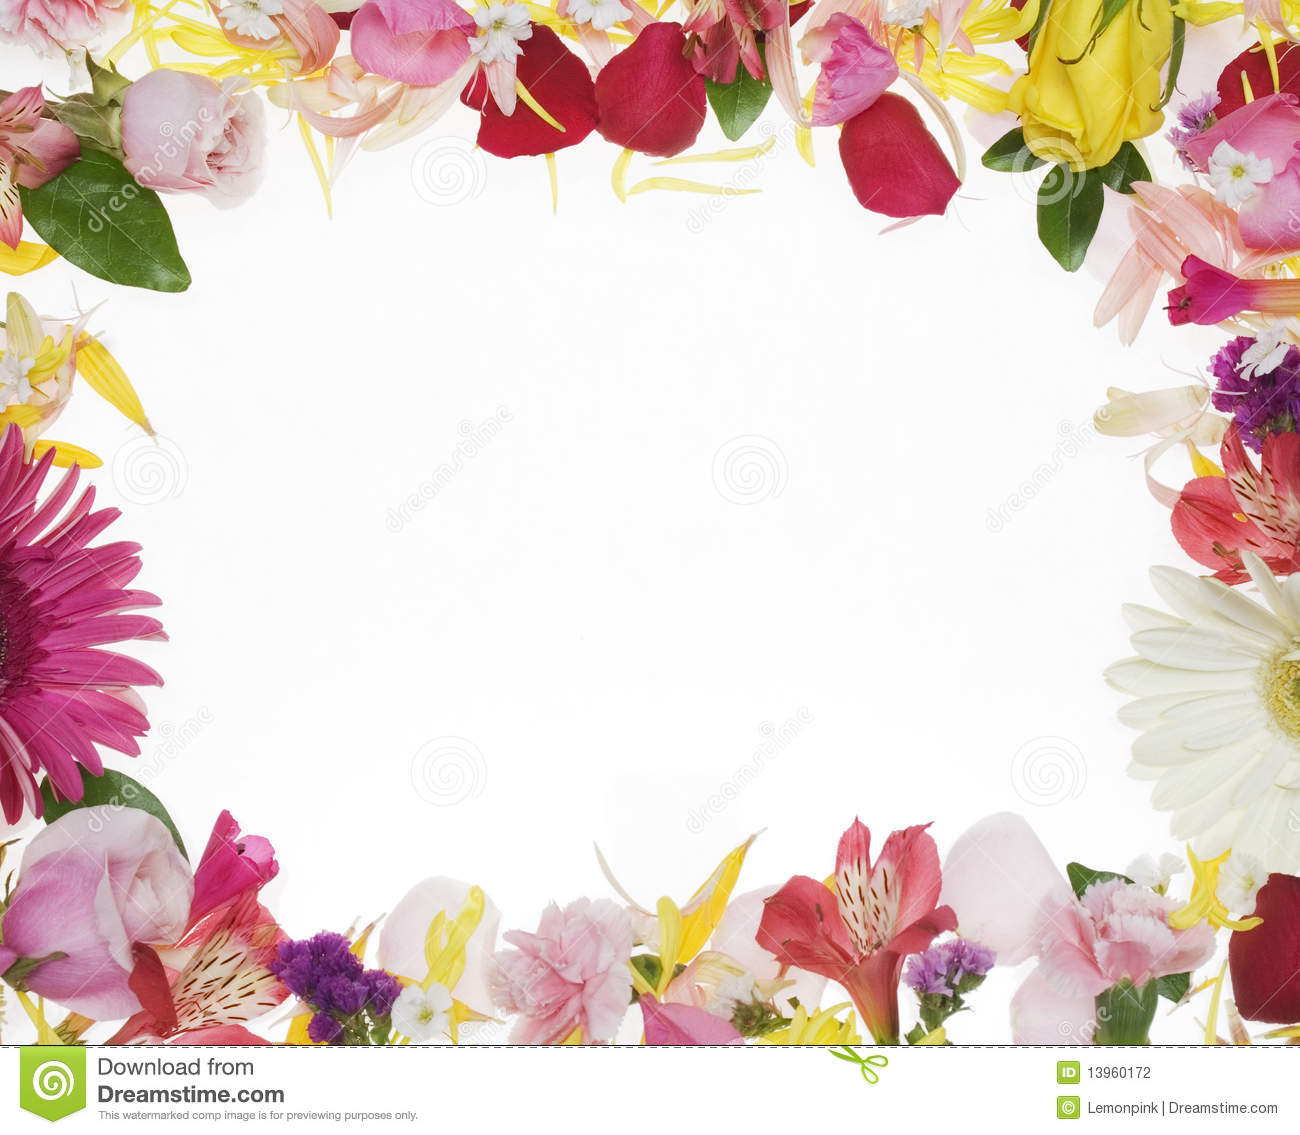 Writing Wall Art Stickers Flower Border Stock Photography Image 13960172